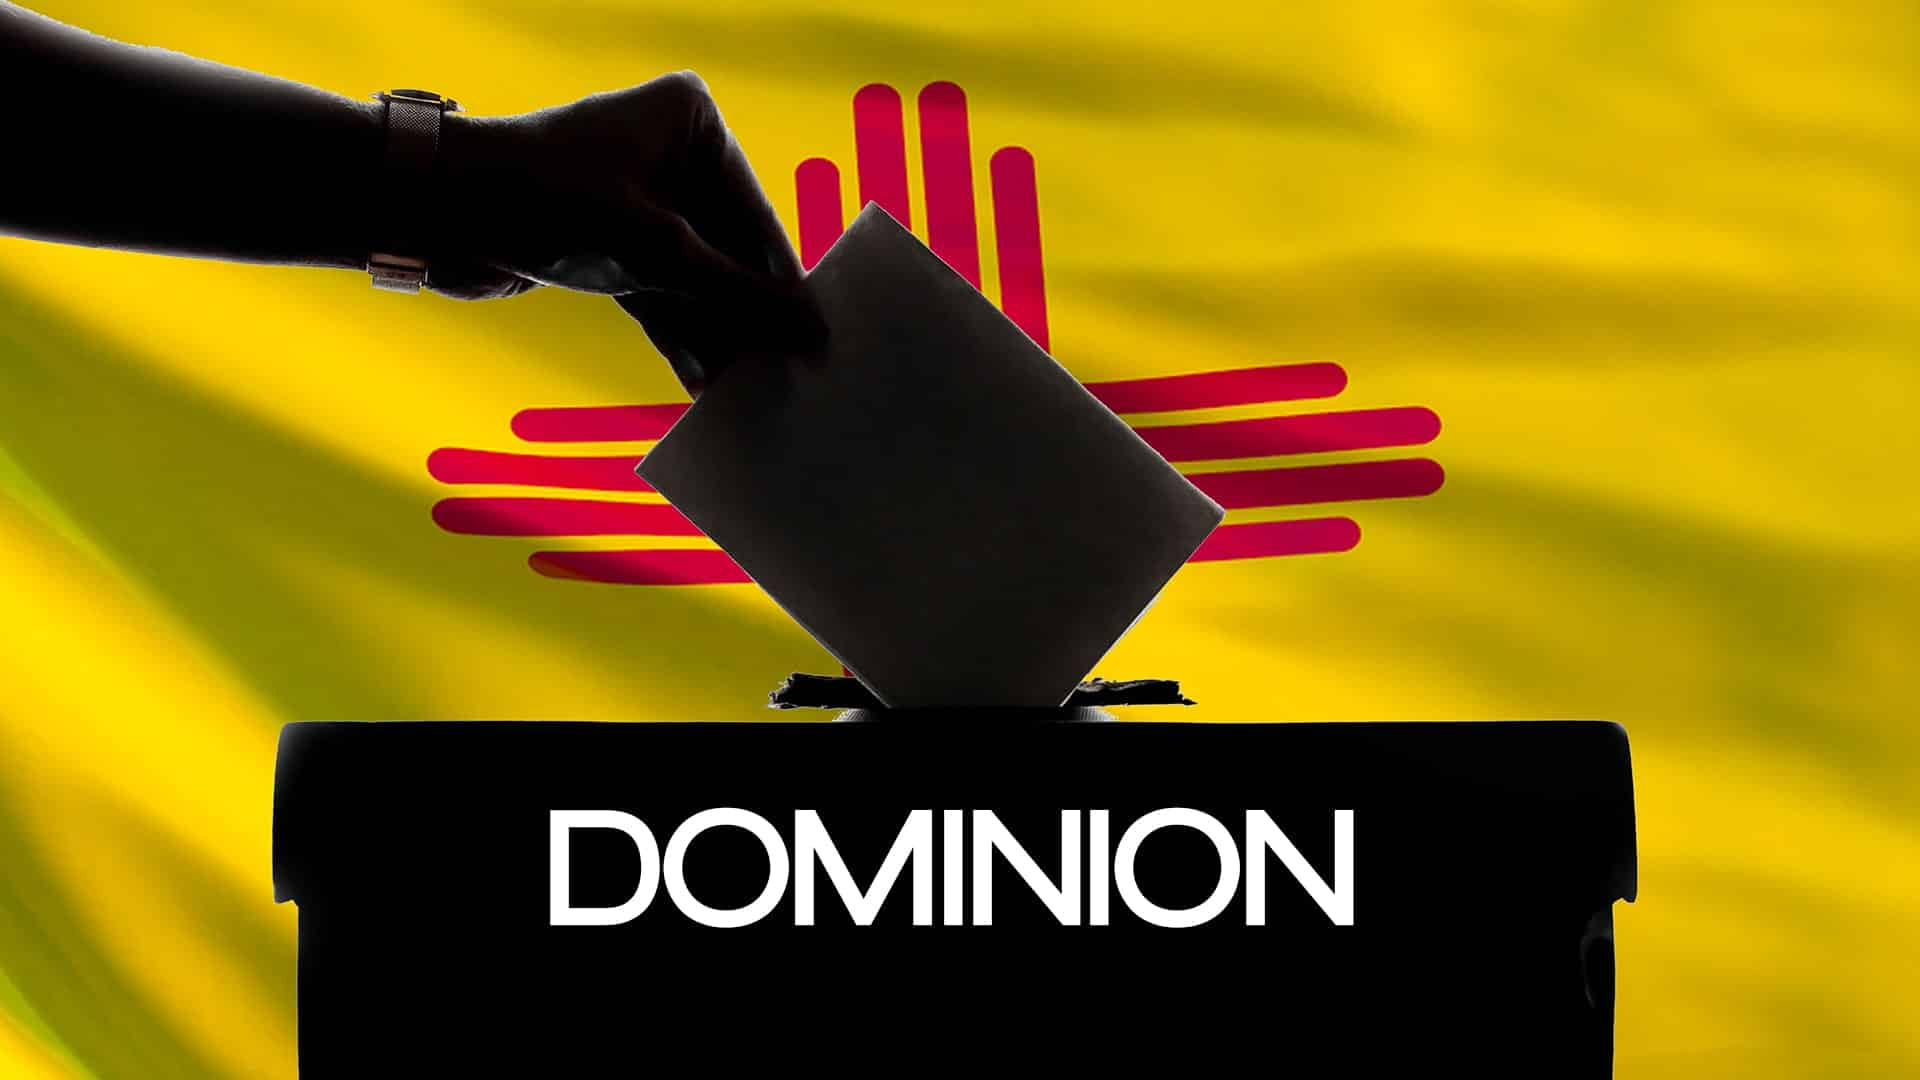 Dominion CEO Admits In Testimony: Machines Rely On Chinese Parts From 'Screen Interface Down To Chip Level' 1